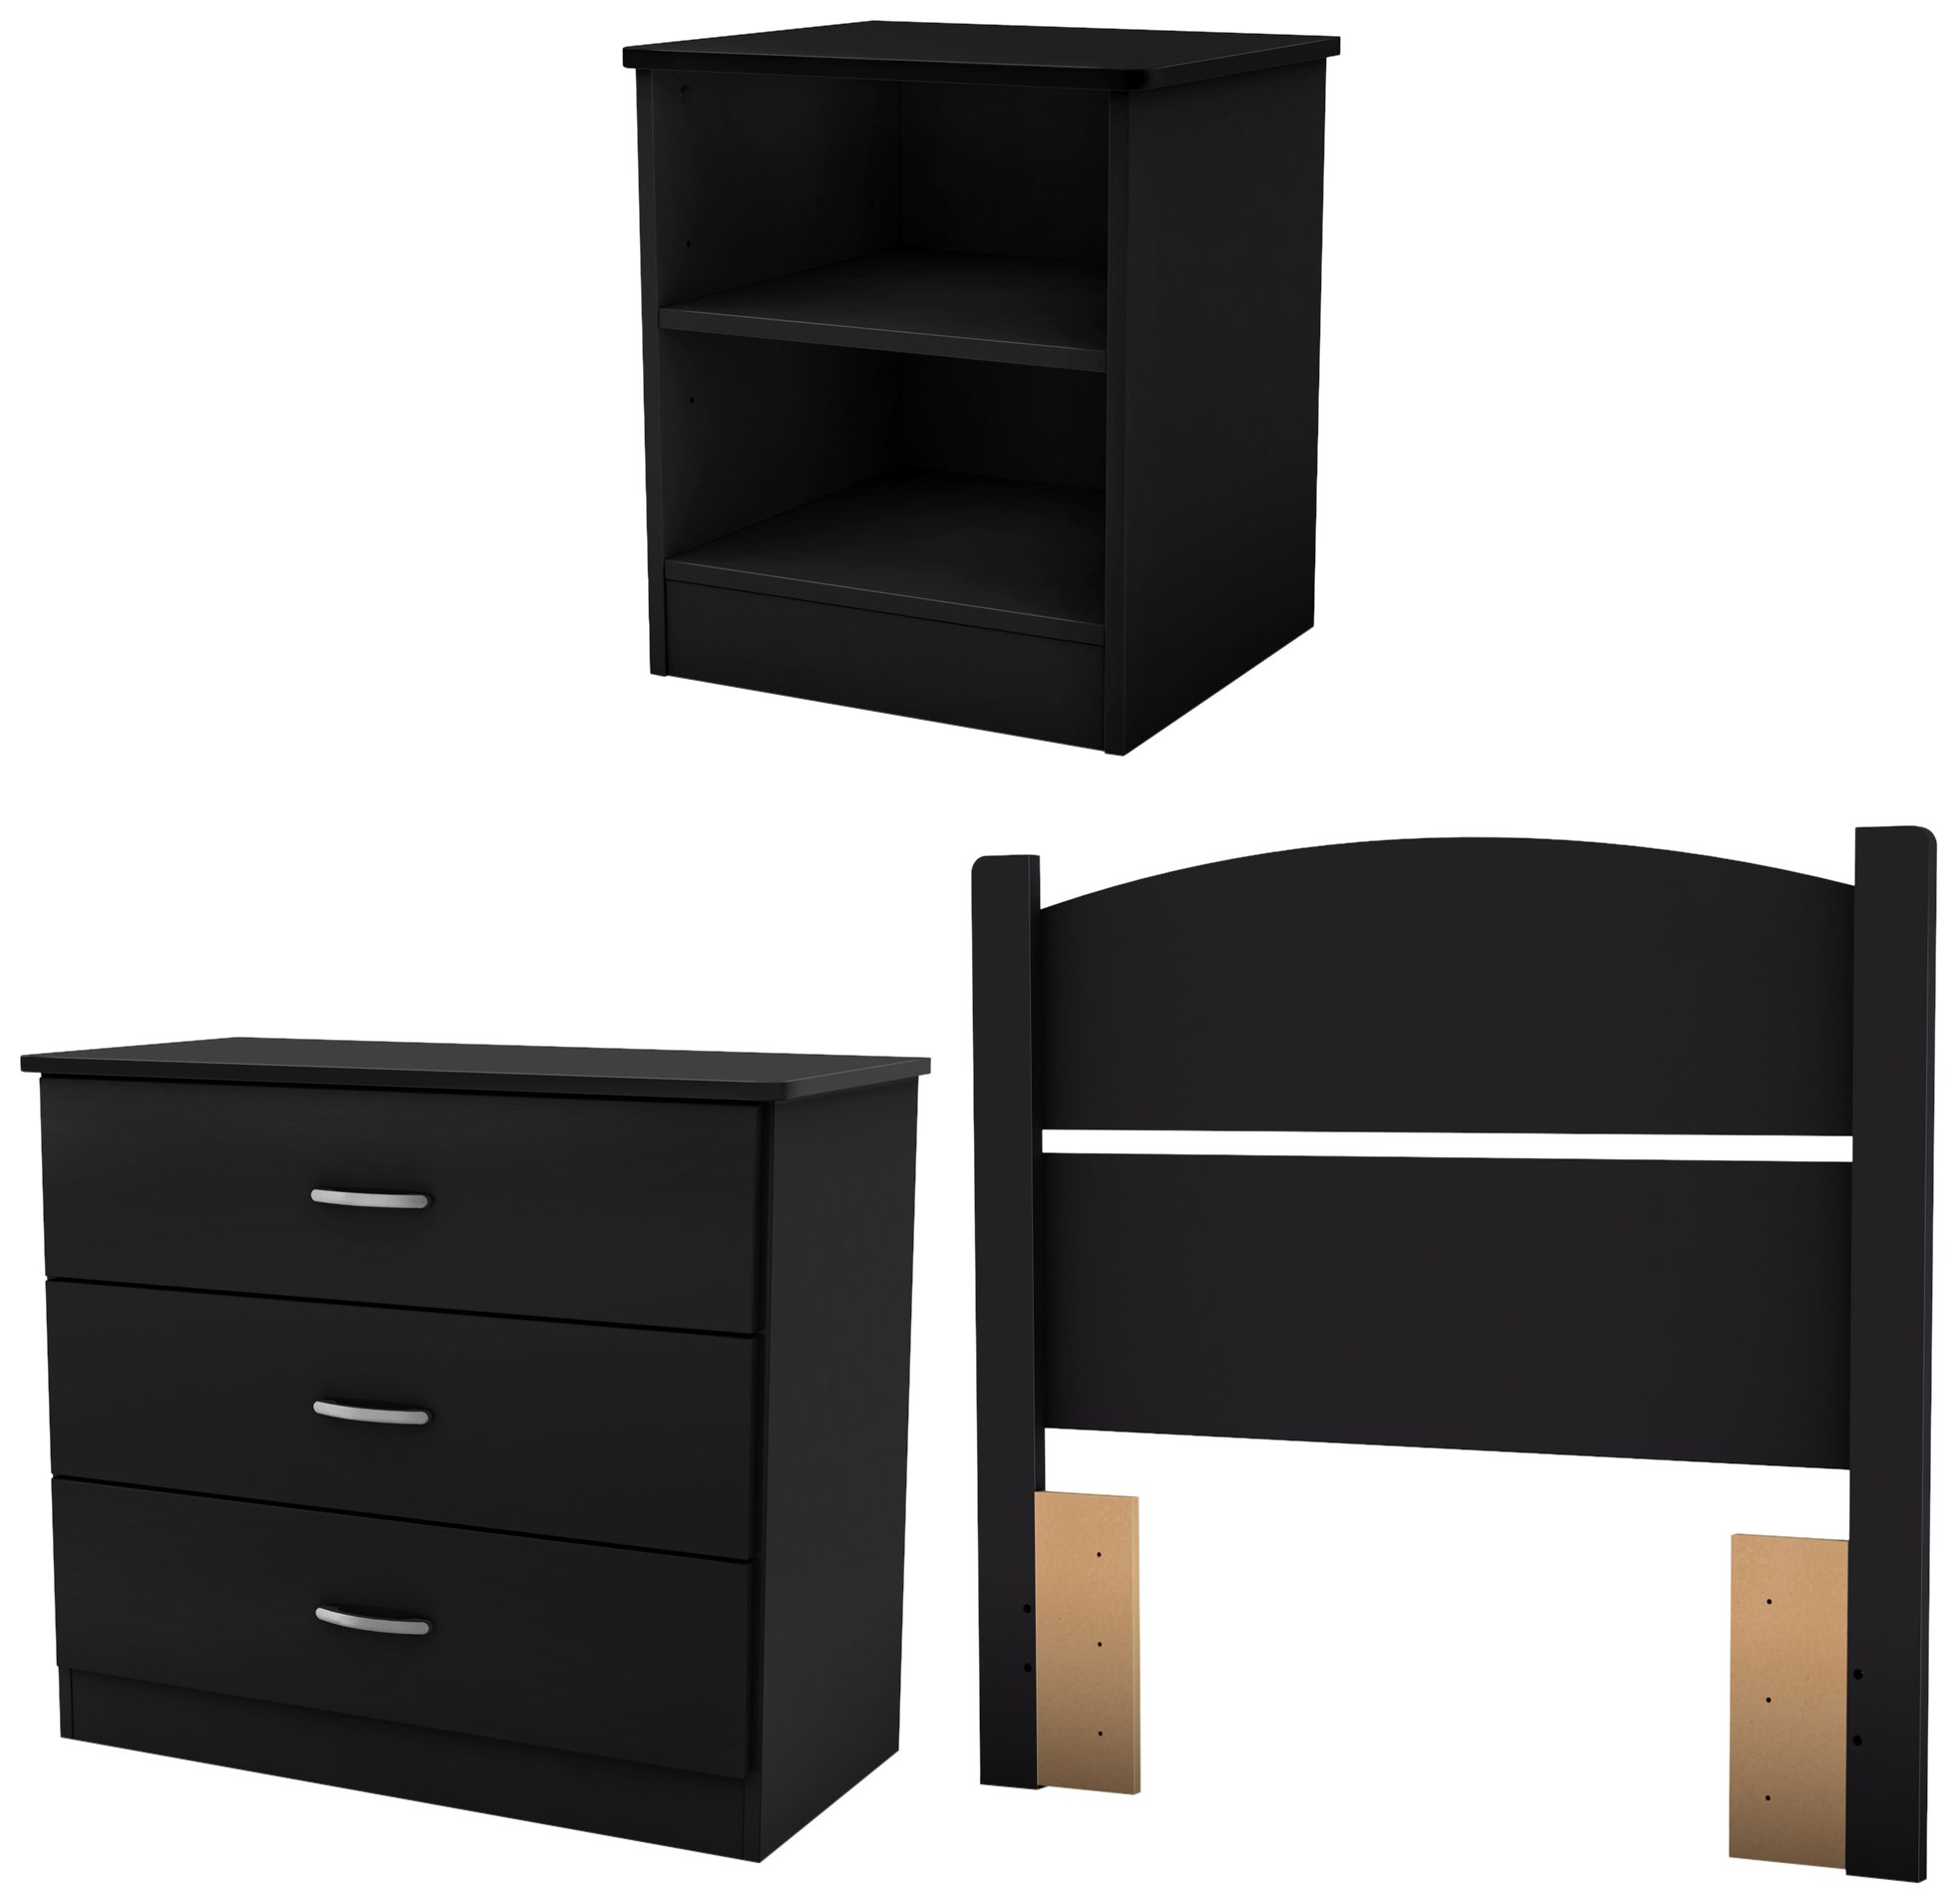 South Shore 3070223 Libra 3-Piece Bedroom Set with Dresser, Nightstand, and Twin Headboard, Pure Black